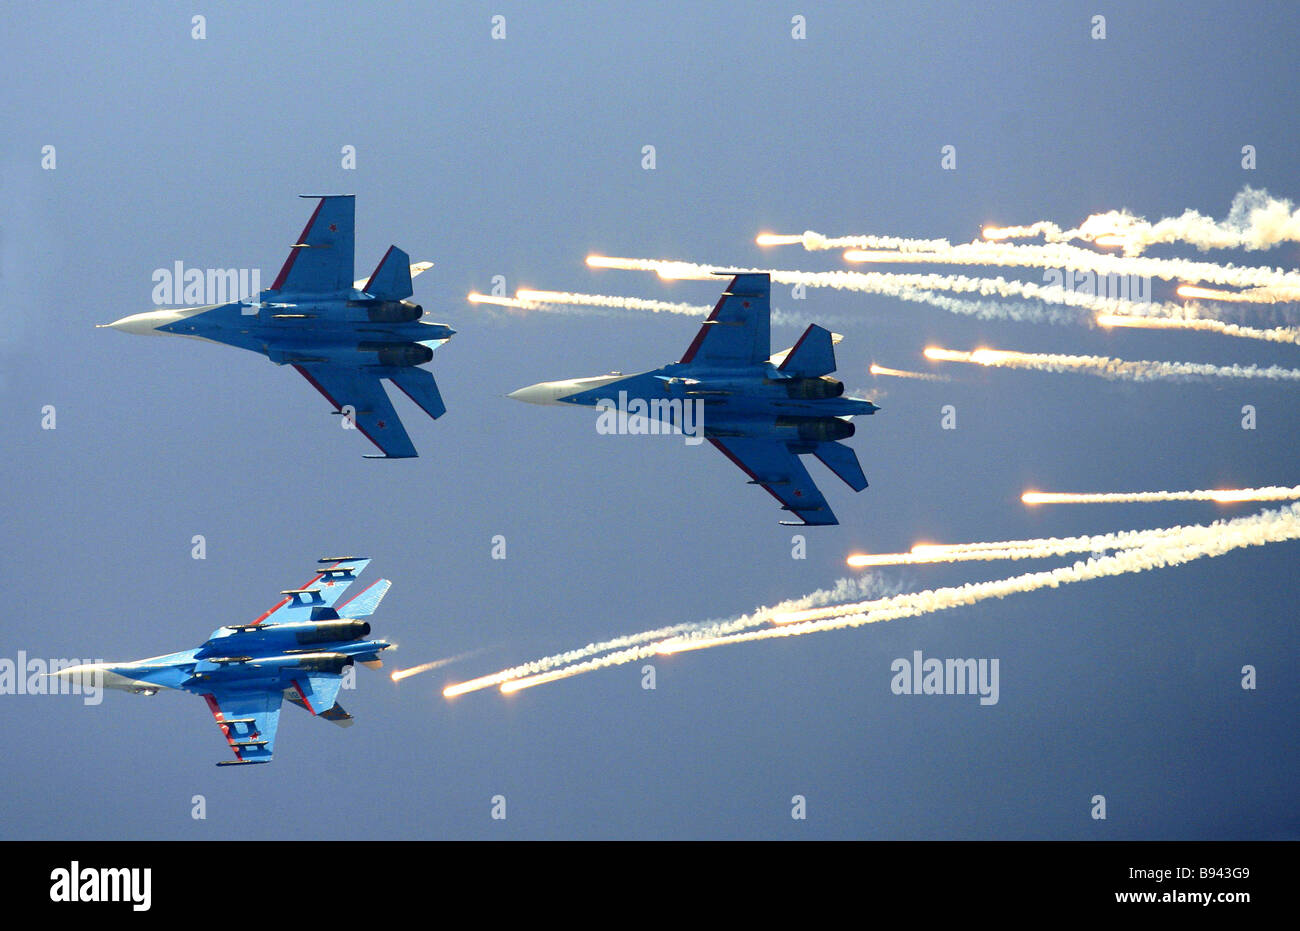 The Russian Knights aerobatic team piloting the Su 27 fighter at the opening ceremony of the MAKS 2007 International - Stock Image